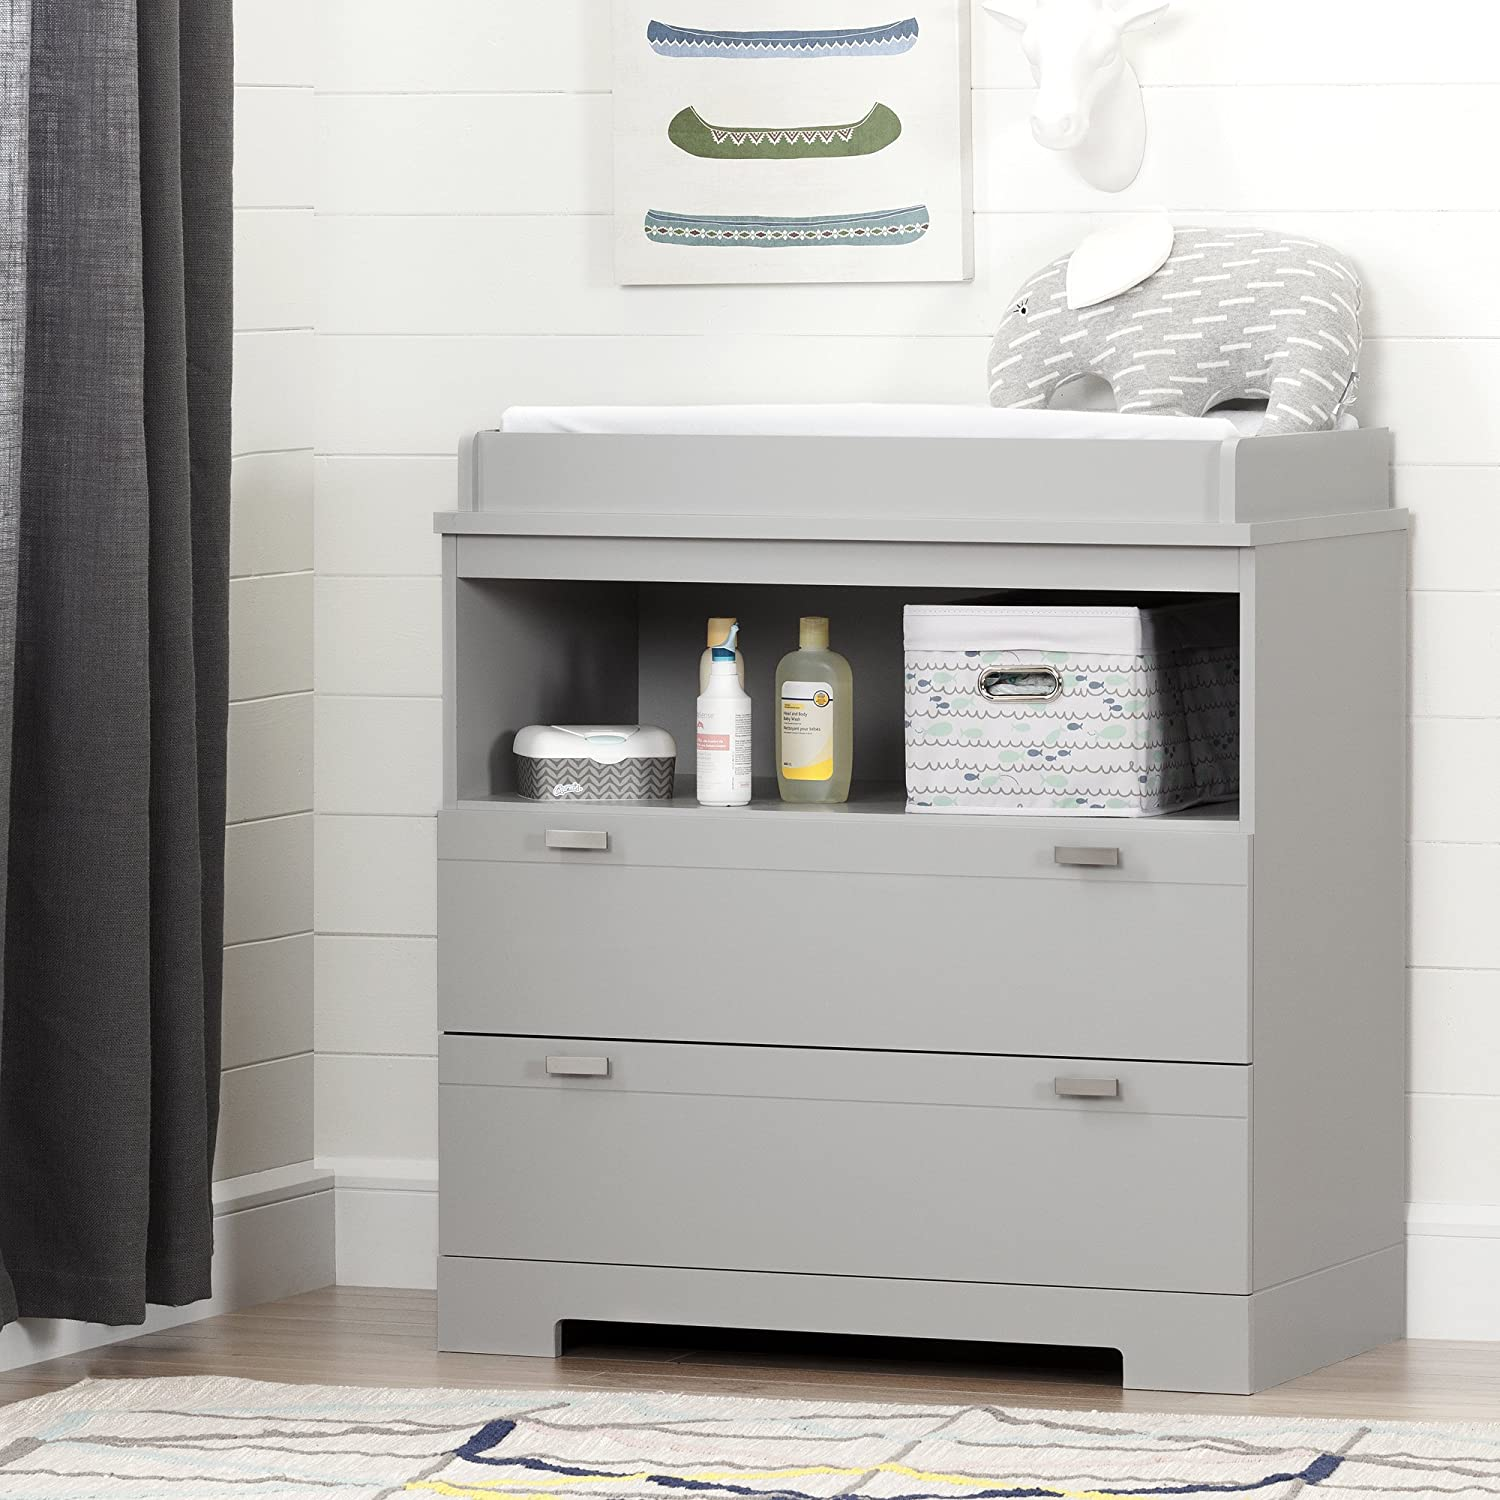 Soft Gray South Shore Reevo Changing Table and Dresser with Drawers